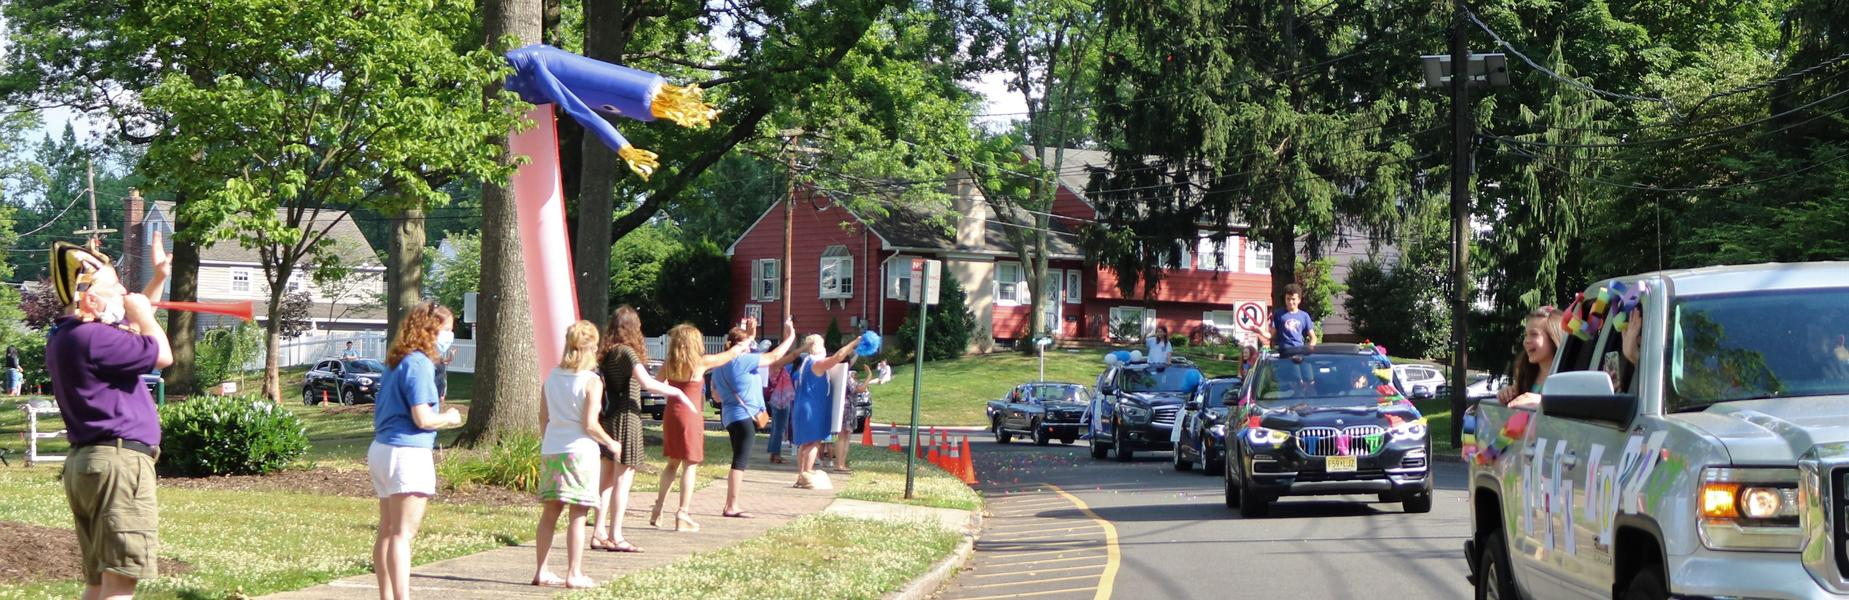 Photo of Washington principal and staff waving to 5th graders during Grade 5 Clap Out Car Parade.